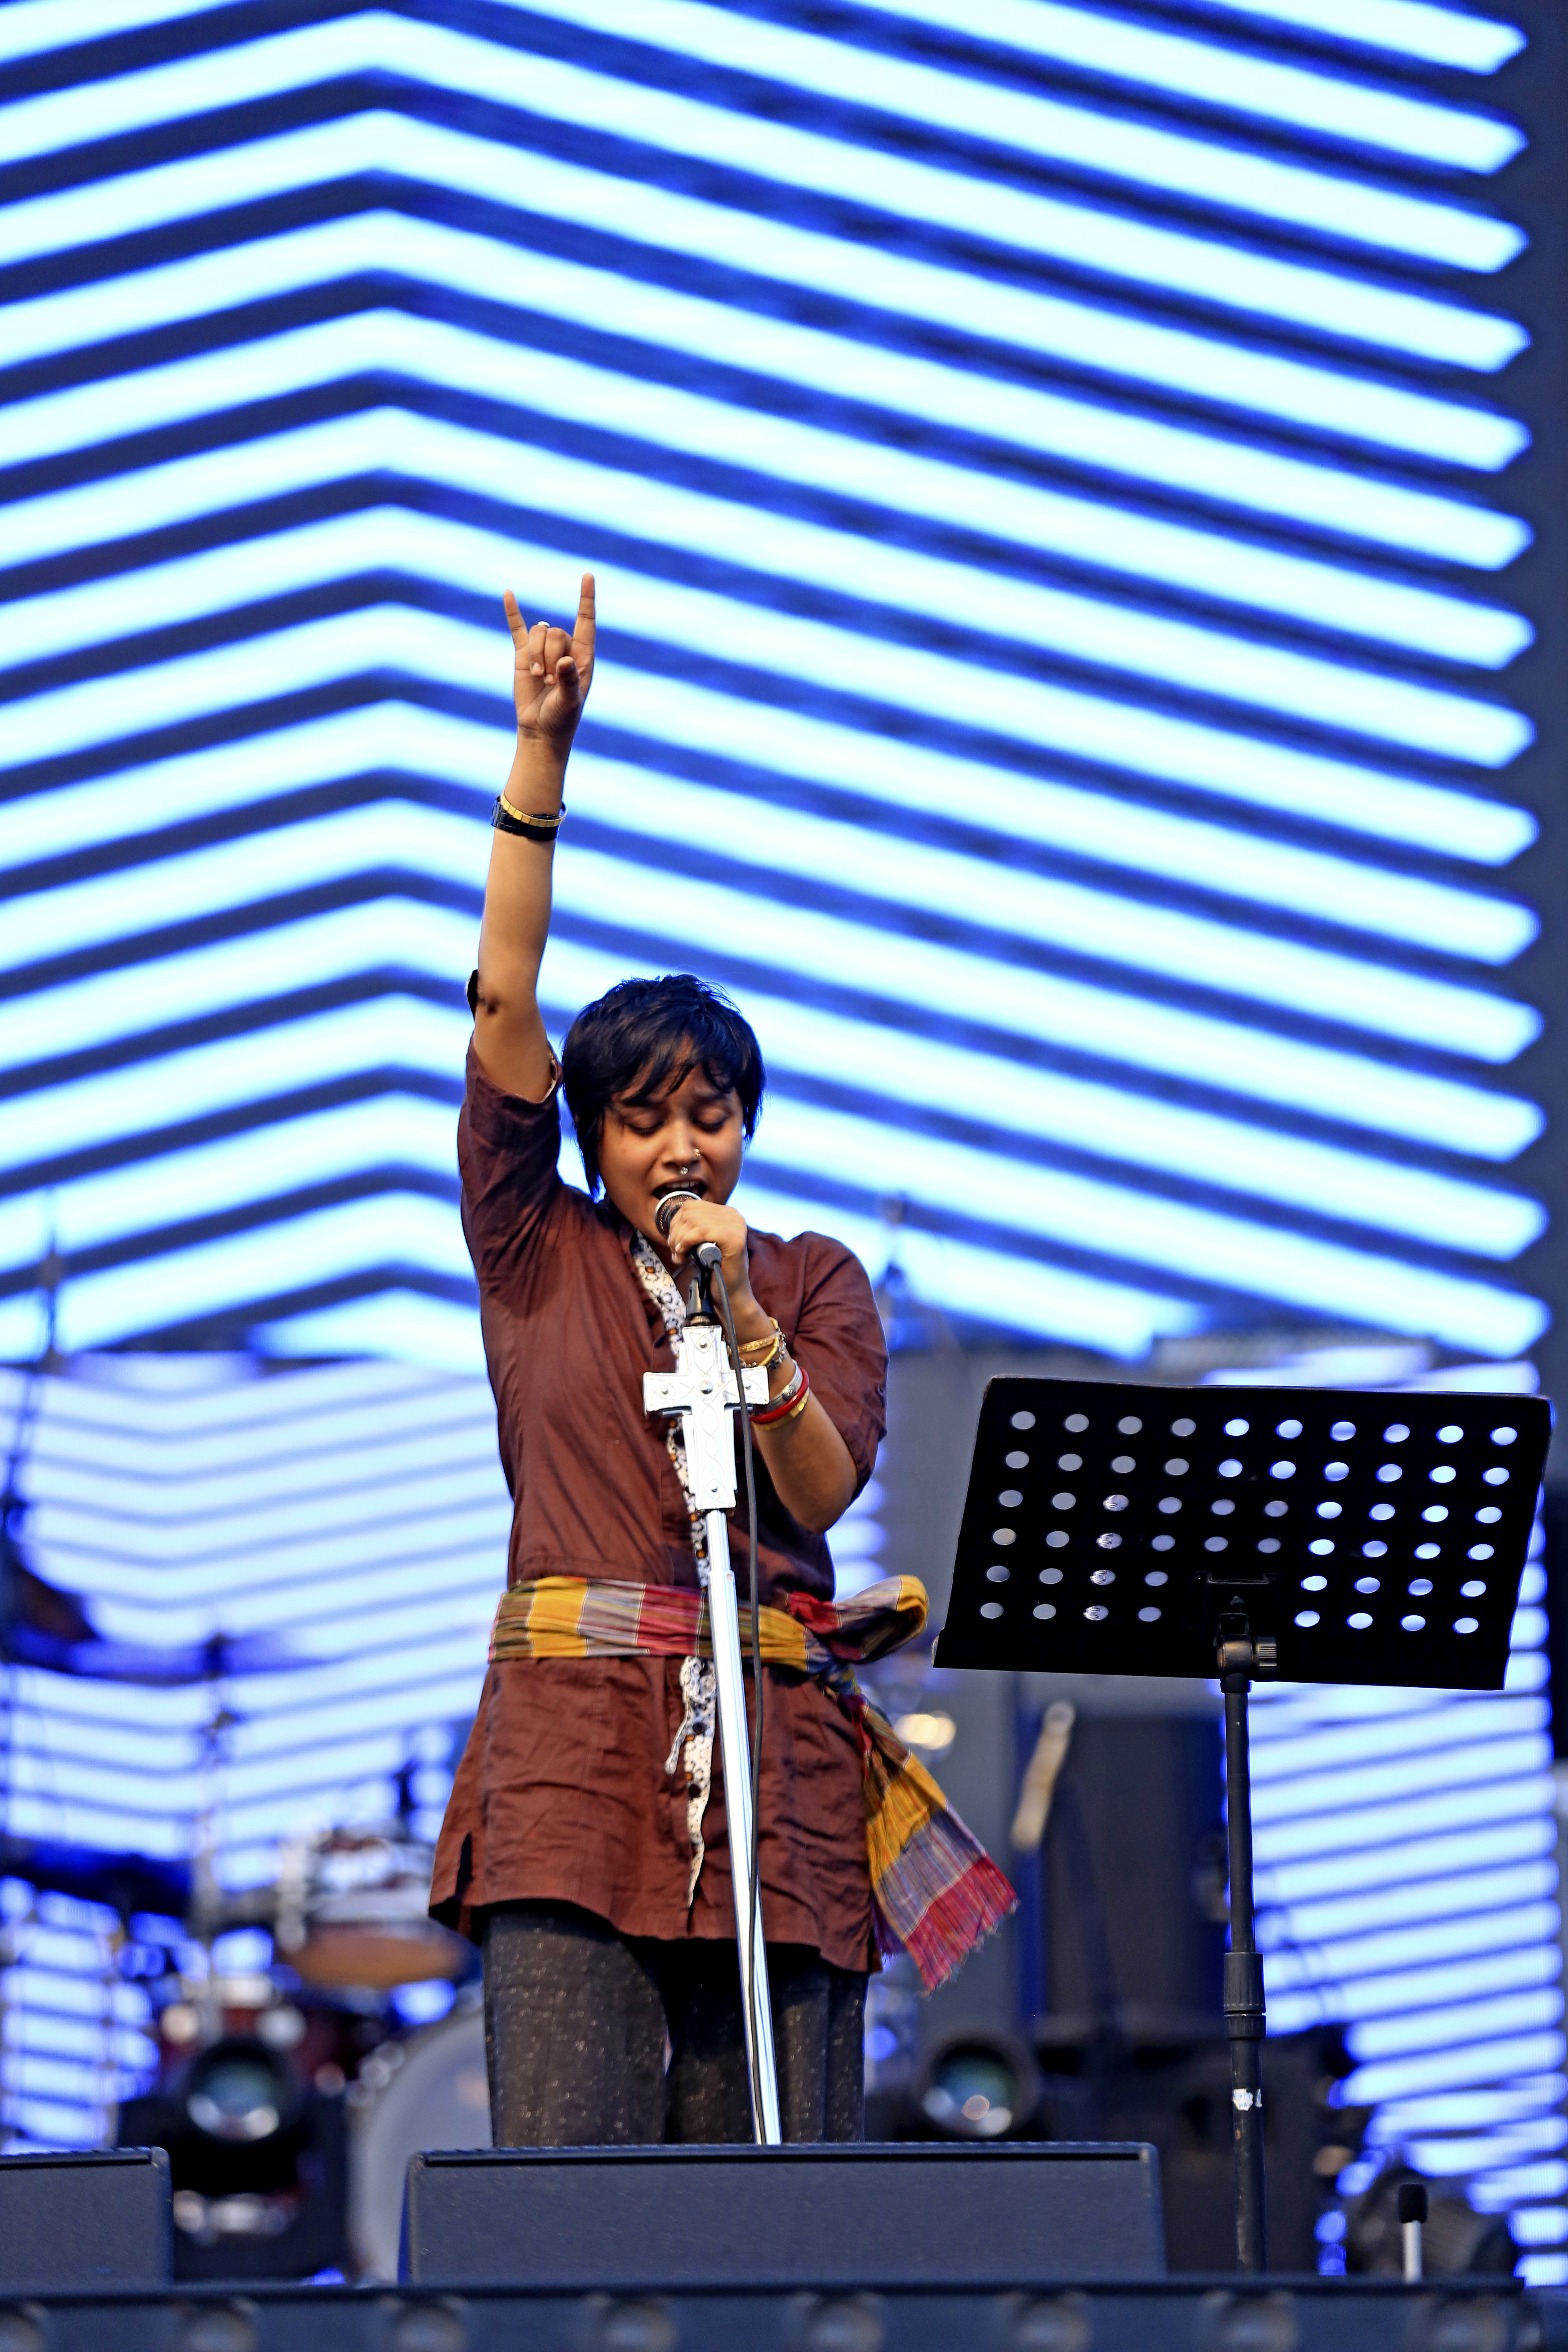 Joy Bangla Concert 2019: 5 Years of Rocking with the Spirit of 7th